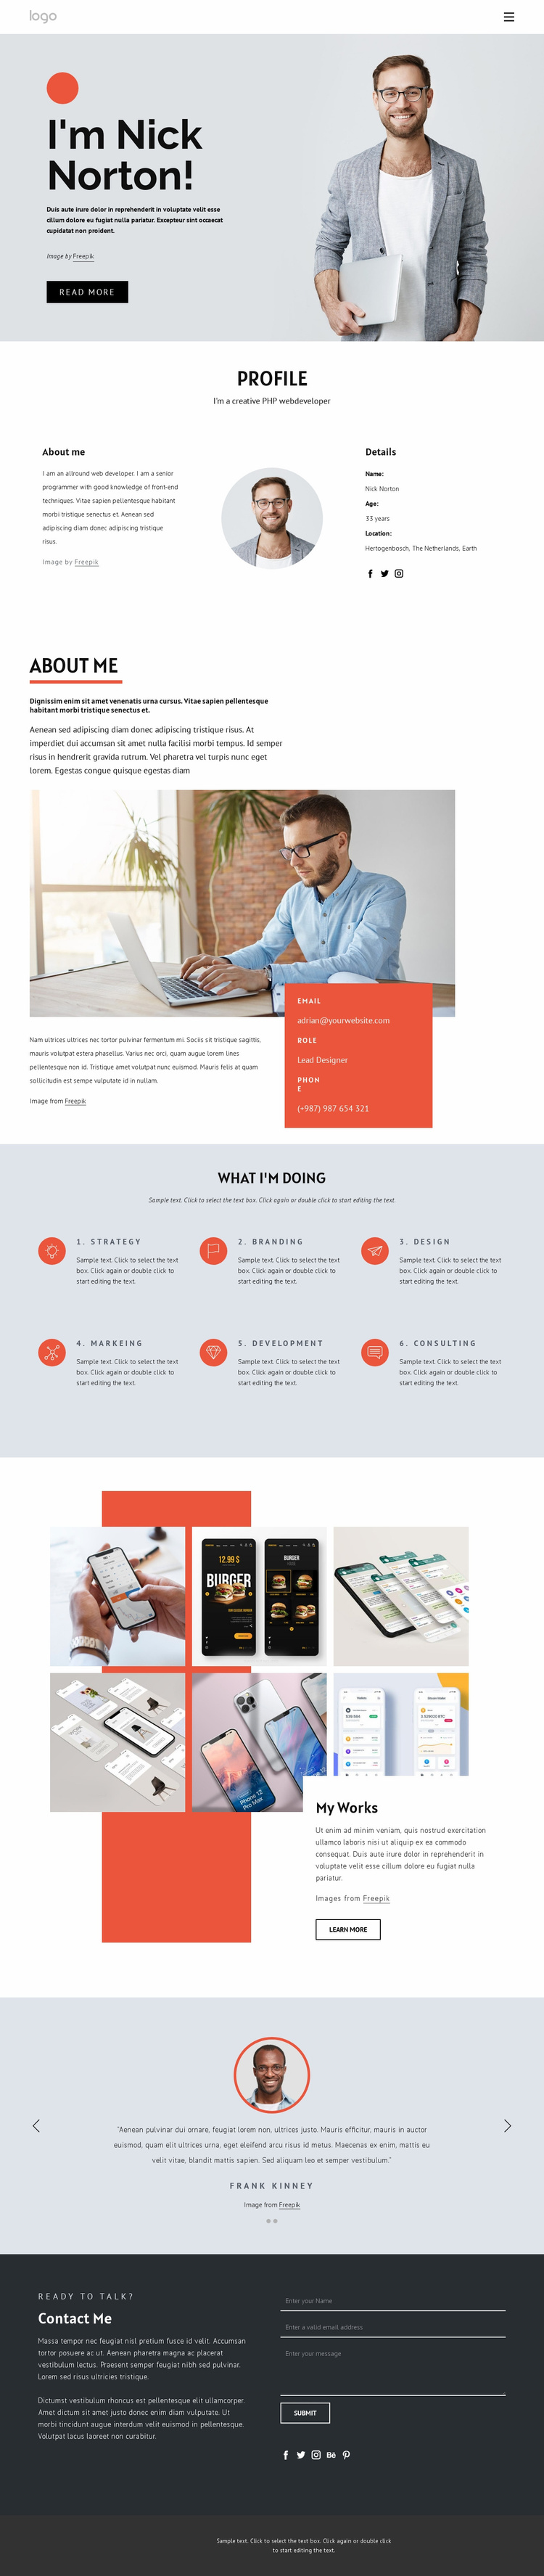 Web Developer with 8 years of experience Website Template